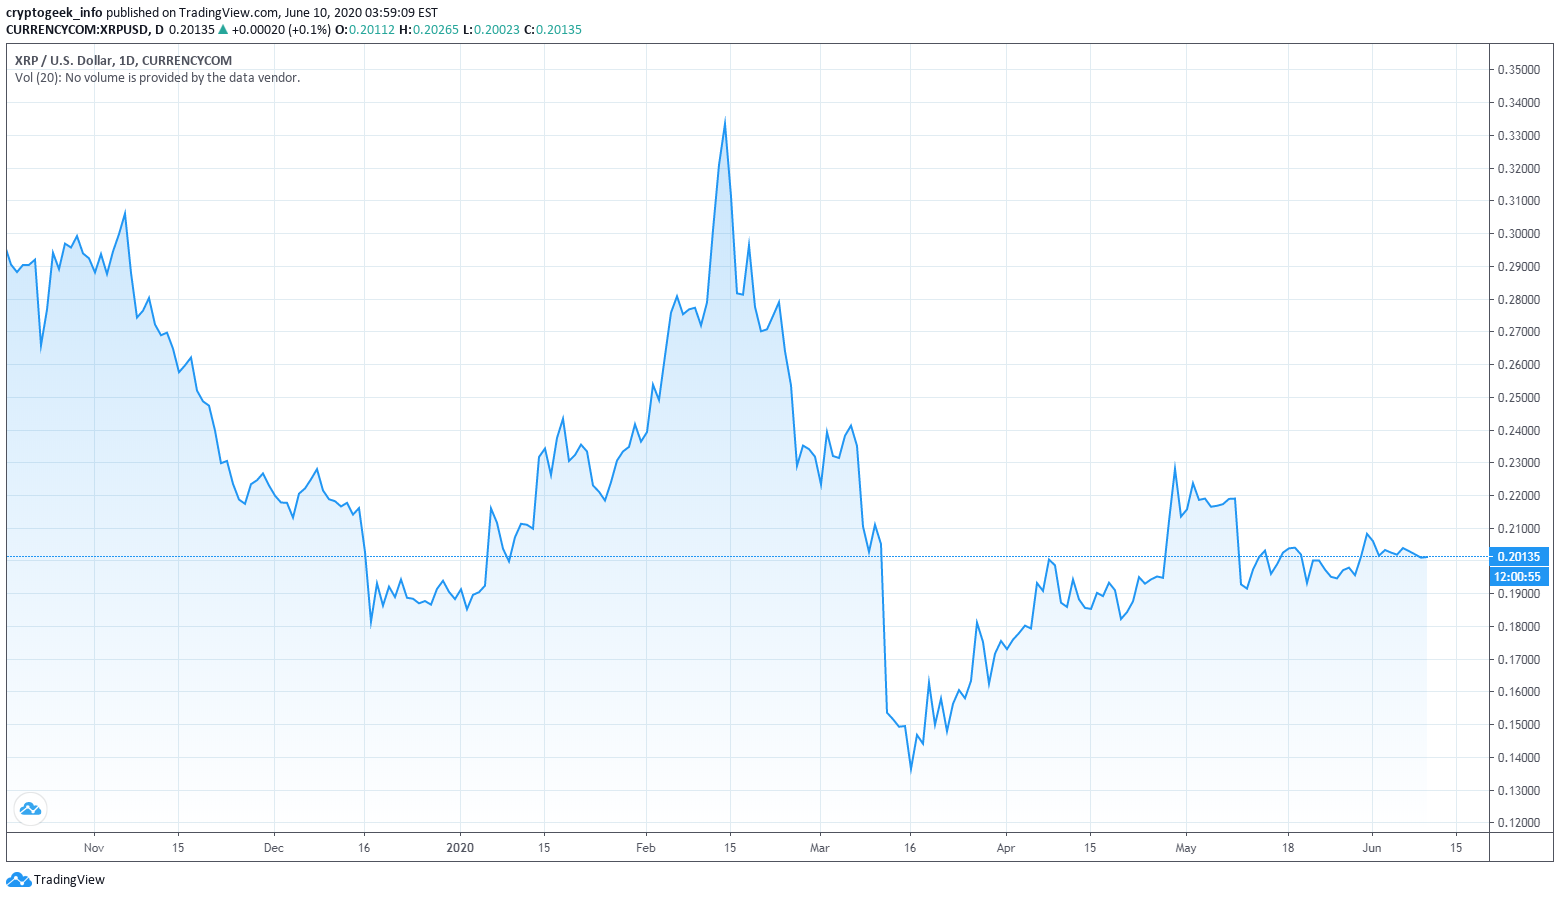 xrp price prediction 2020 for currencycom xrpusd by cryptogeek info tradingview xrp price prediction 2020 for